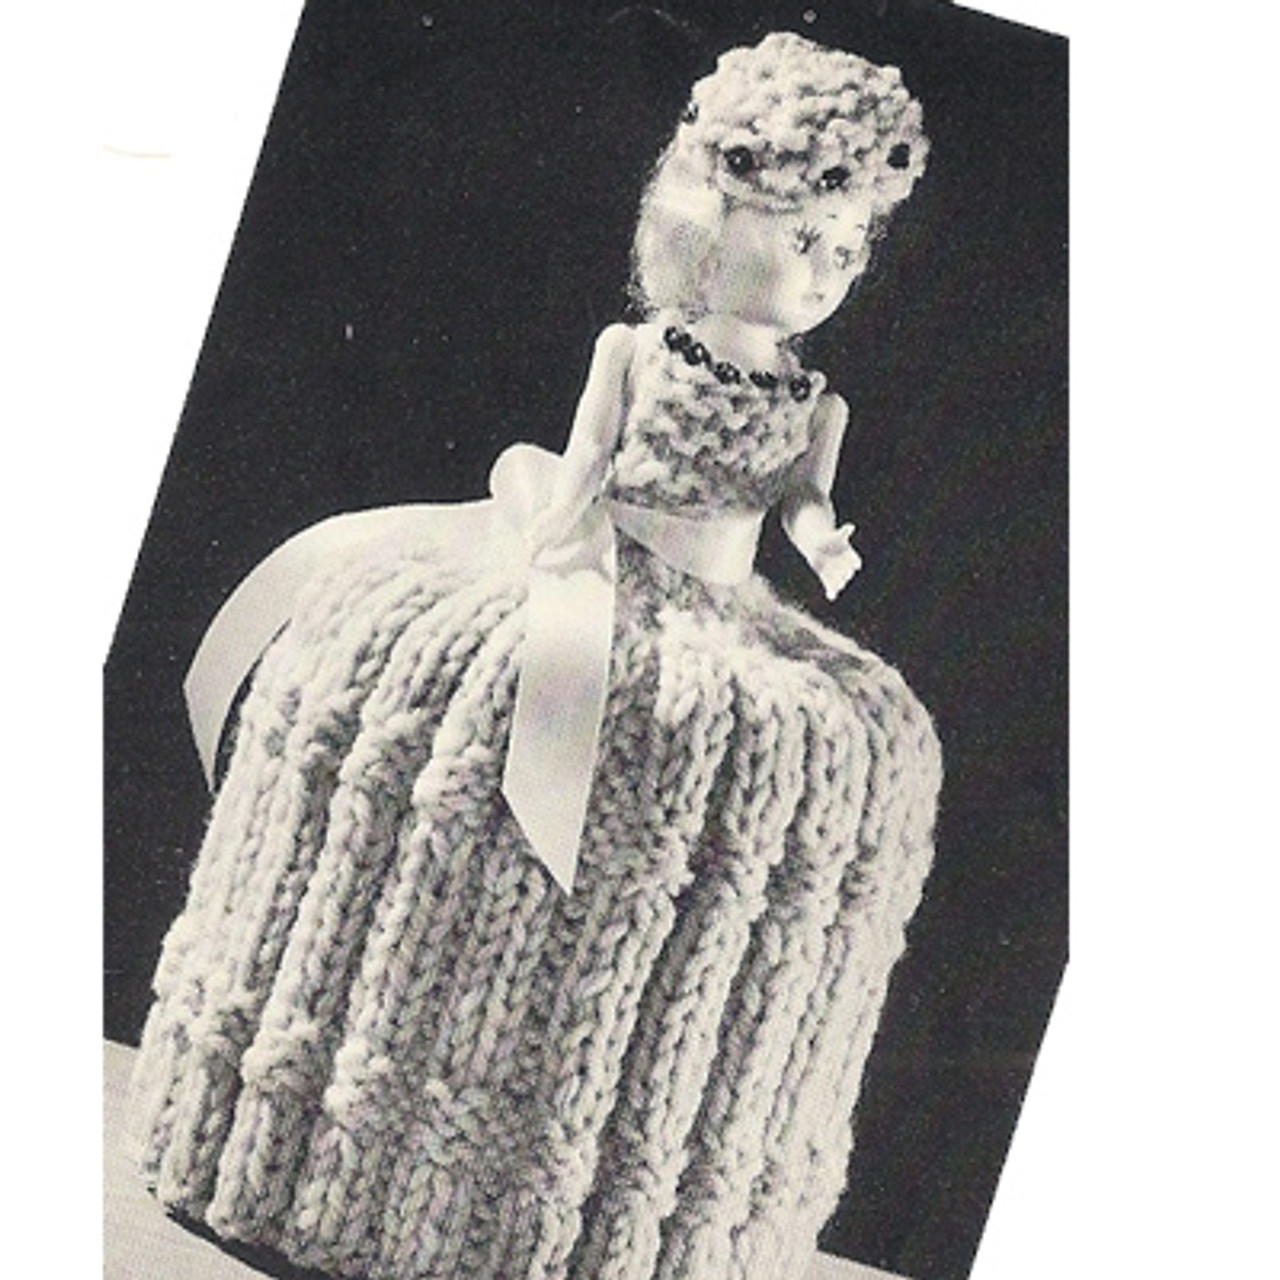 Knitted Doll TP Topper Pattern